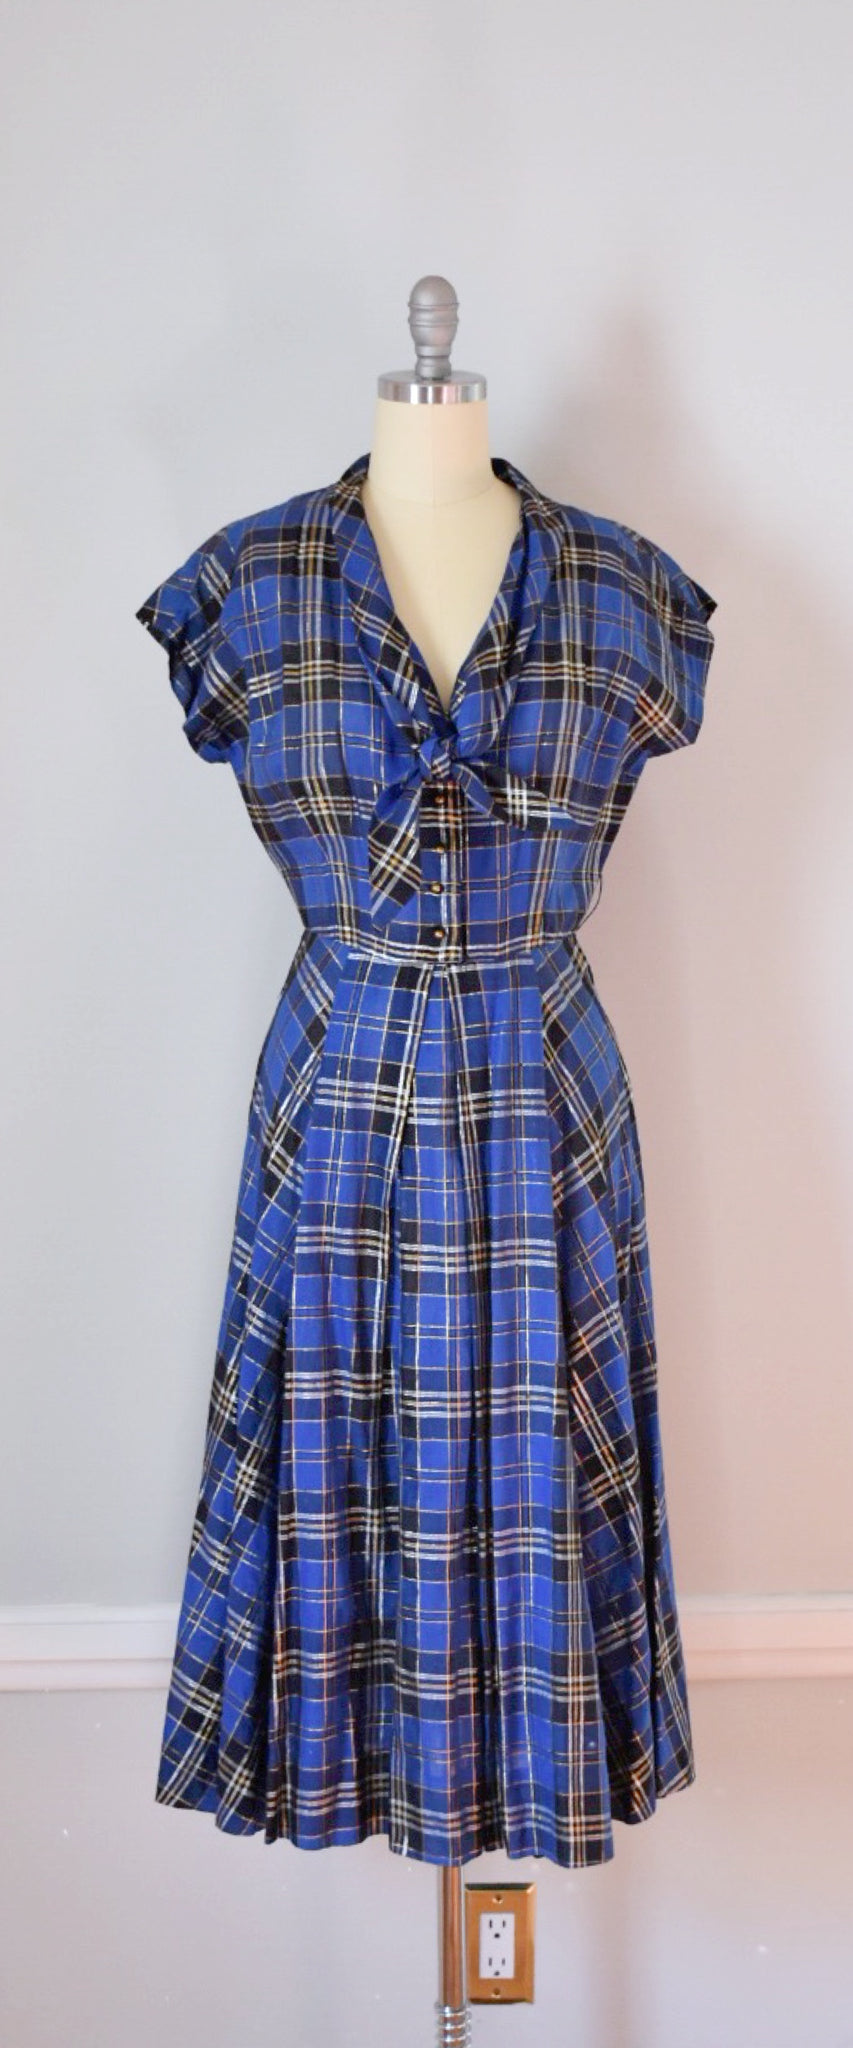 50s Vintage Metallic Shirtwaist Dress